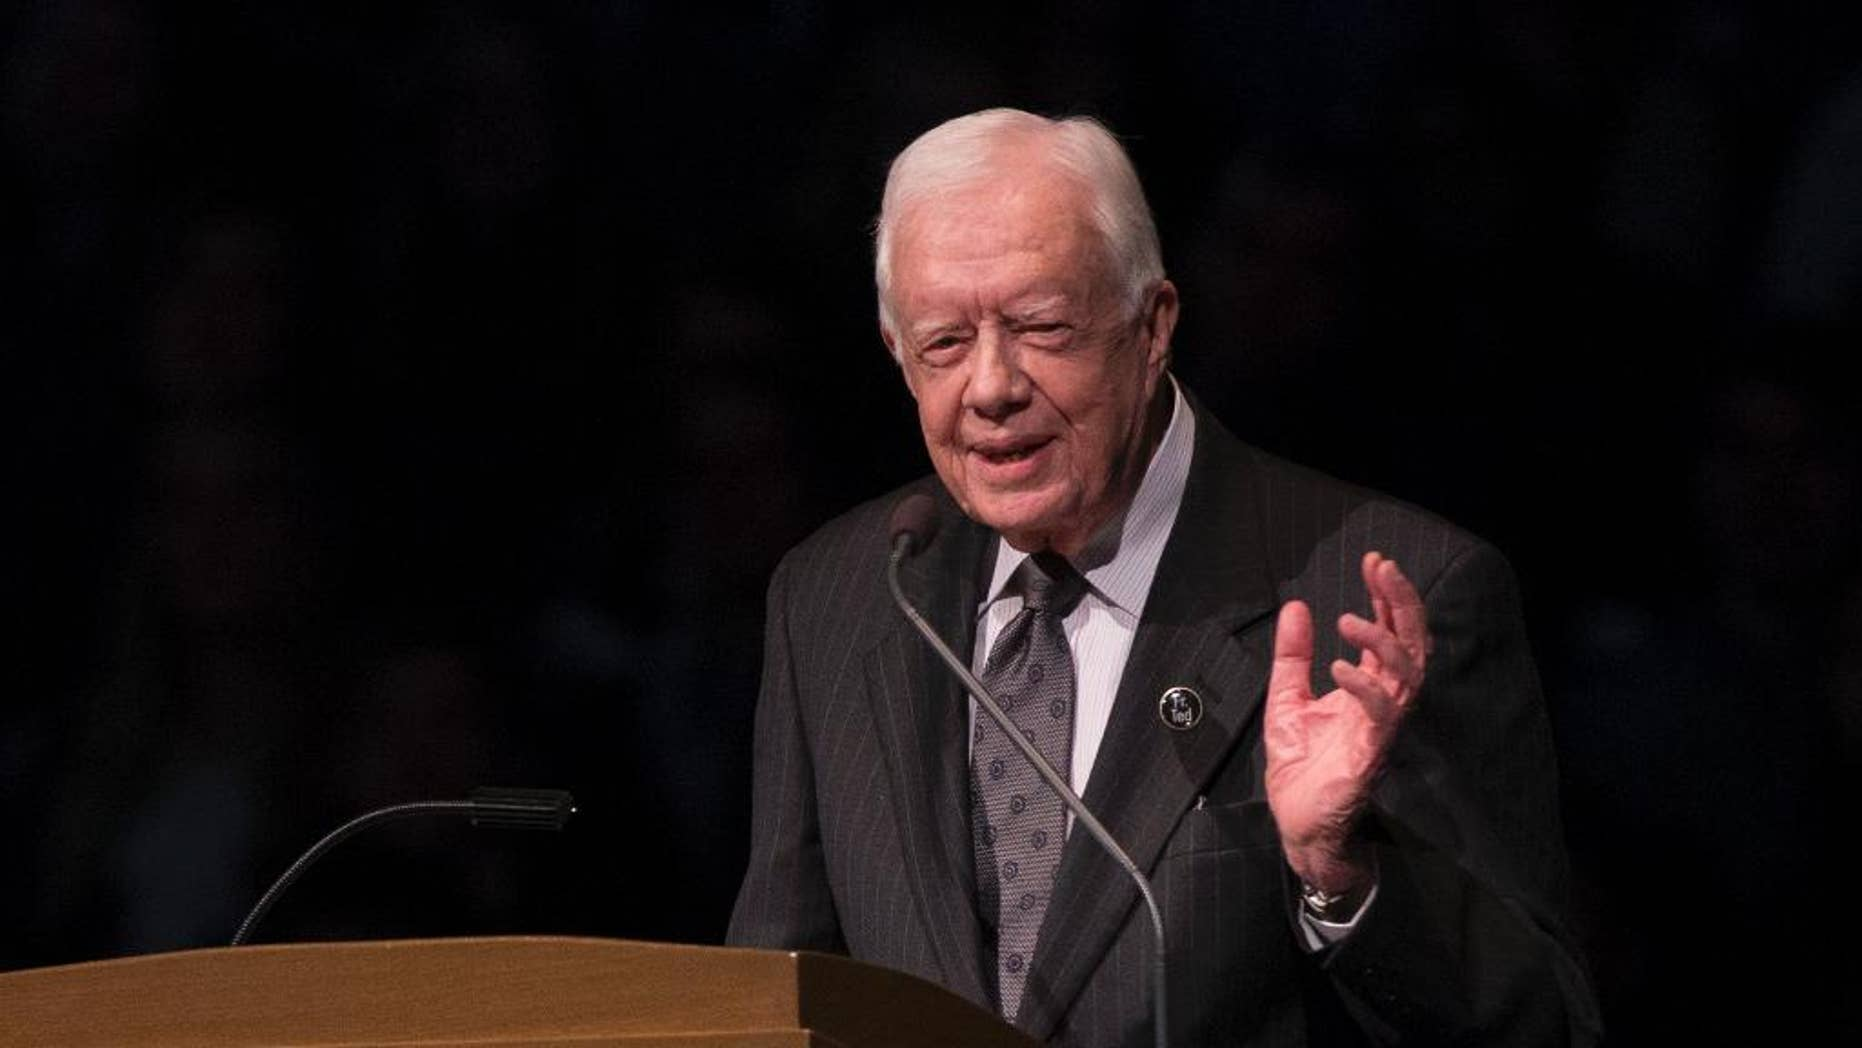 """FILE - In this March 4, 2015, file photo, former President Jimmy Carter speaks during the memorial service for Rev. Theodore Hesburgh, inside the Purcell Pavilion at the University of Notre Dame in South Bend, Ind. Carter Center officials said Sunday, May 10, 2015, that the former President has cut short an election observation visit in Guyana due to health reasons. The statement from the Center says the 90-year-old ex-president is returning to Atlanta. It did not disclose specifics, only saying Carter was """"not feeling well.""""(AP Photo/Robert Franklin, File)"""